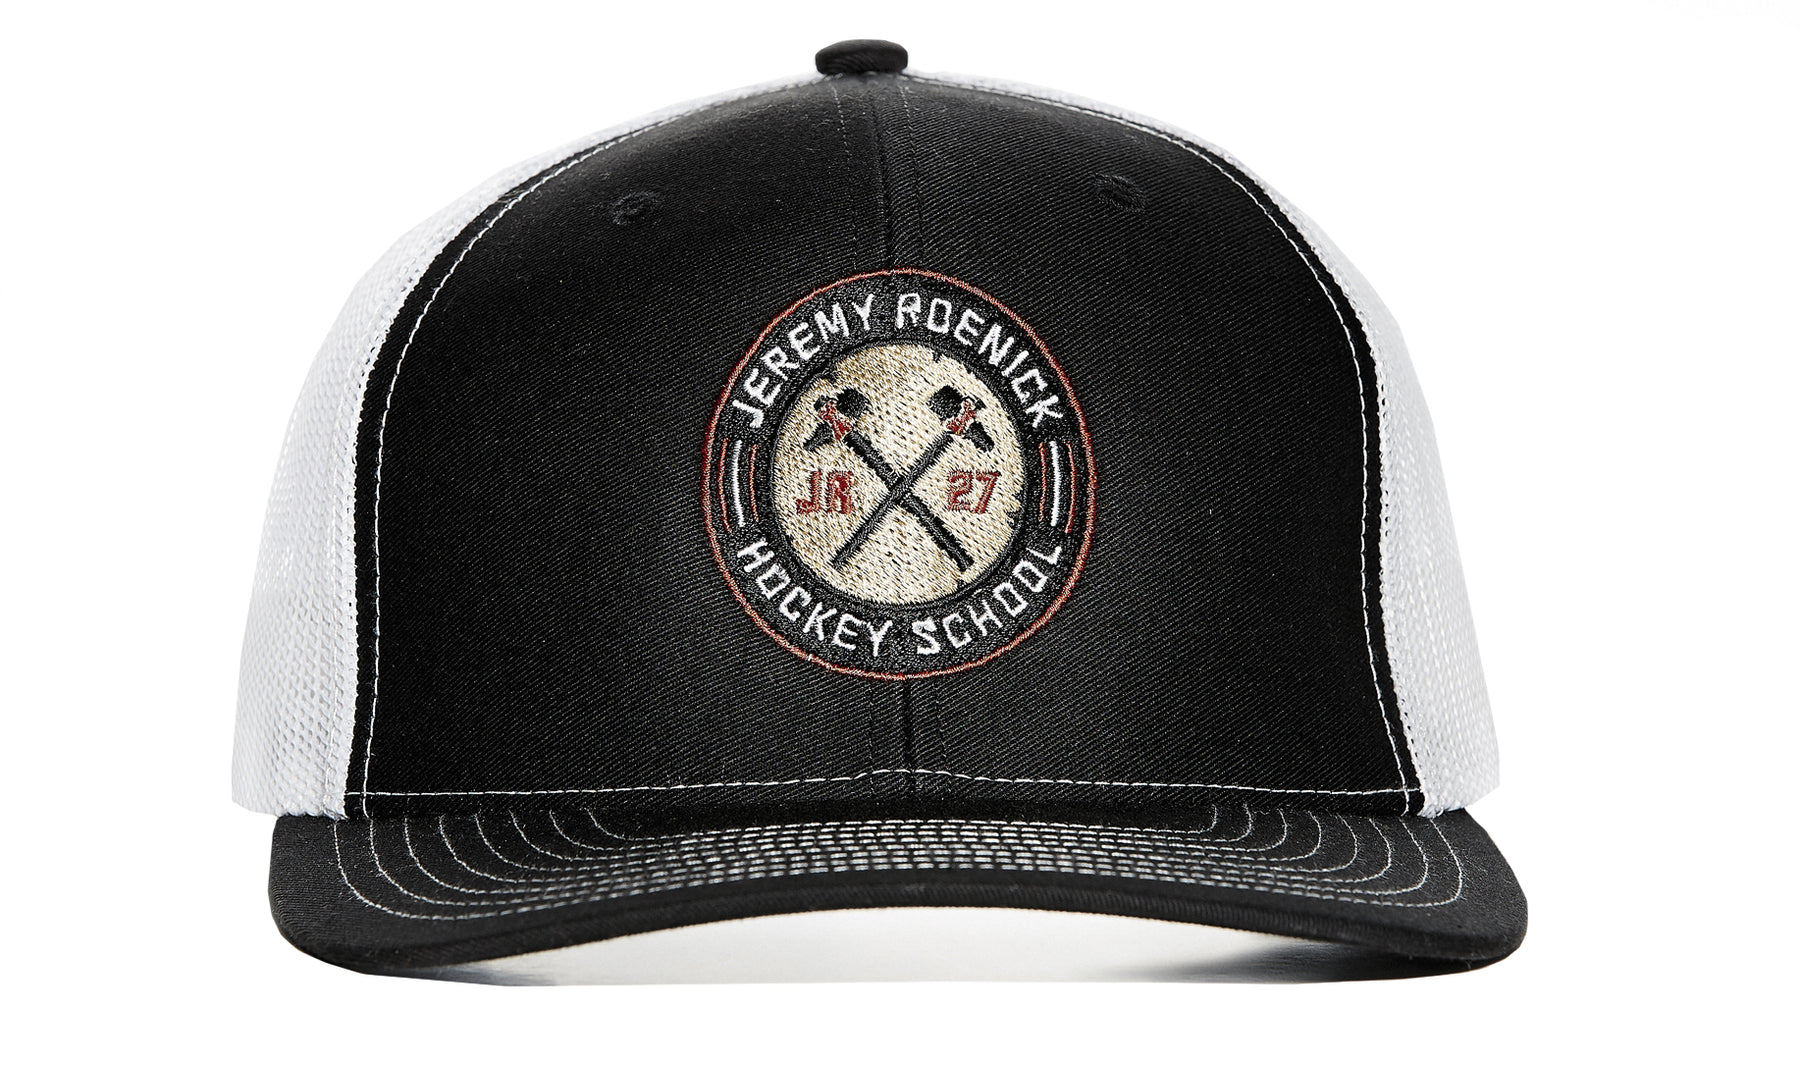 373ff2a6f74 JR Hockey School Hat Mesh Snapback (Black White) – Jeremy Roenick ...